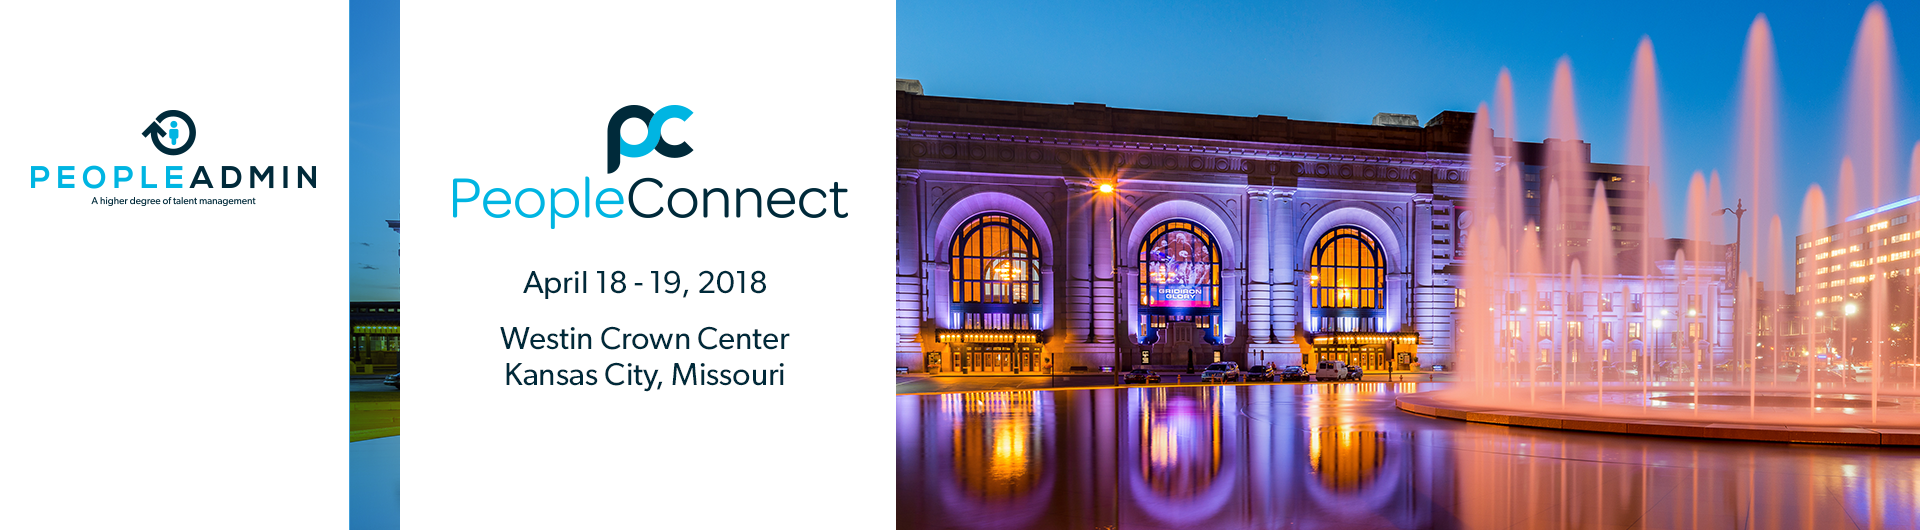 PeopleConnect 2018